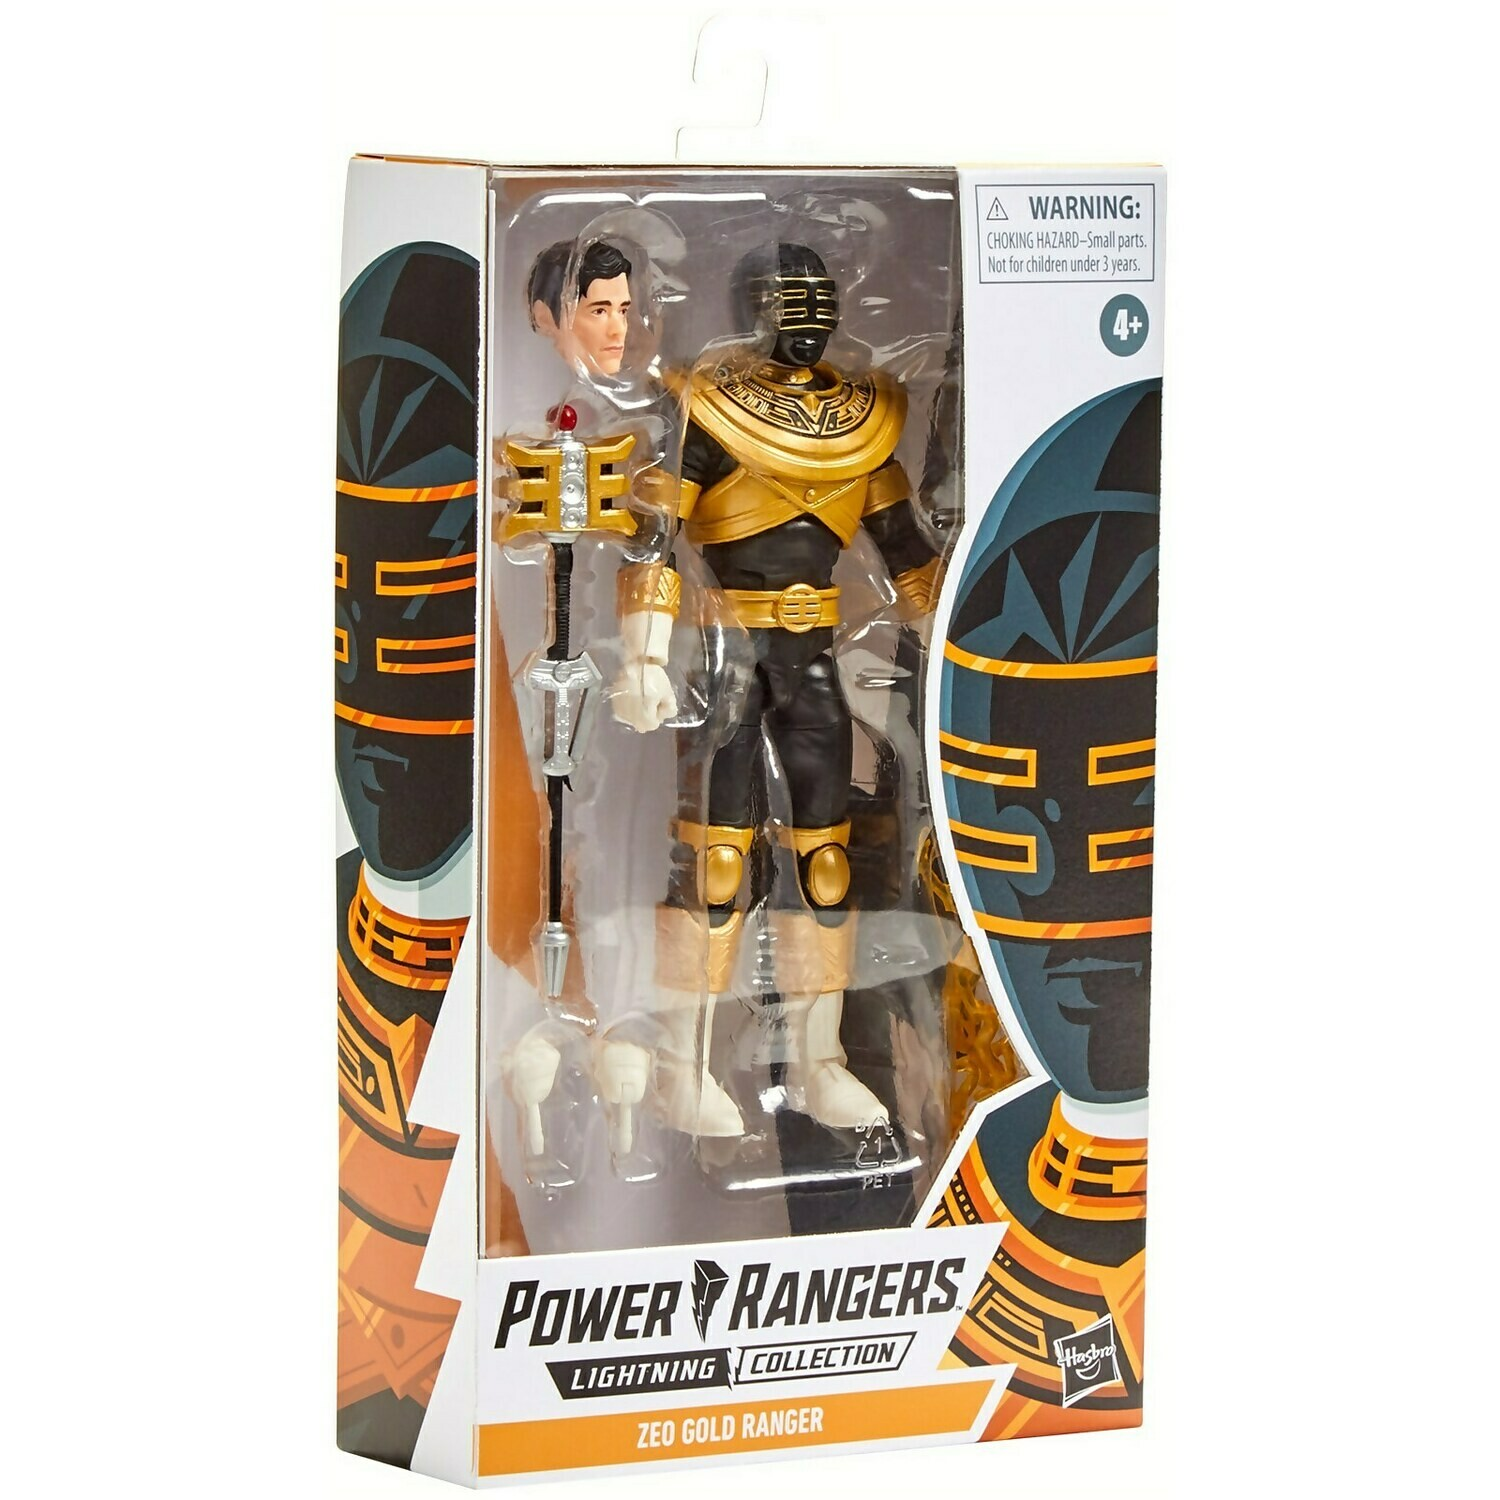 Hasbro Power Rangers Lightning Collection Zeo Gold Ranger 6-Inch Premium Collectible Action Figure